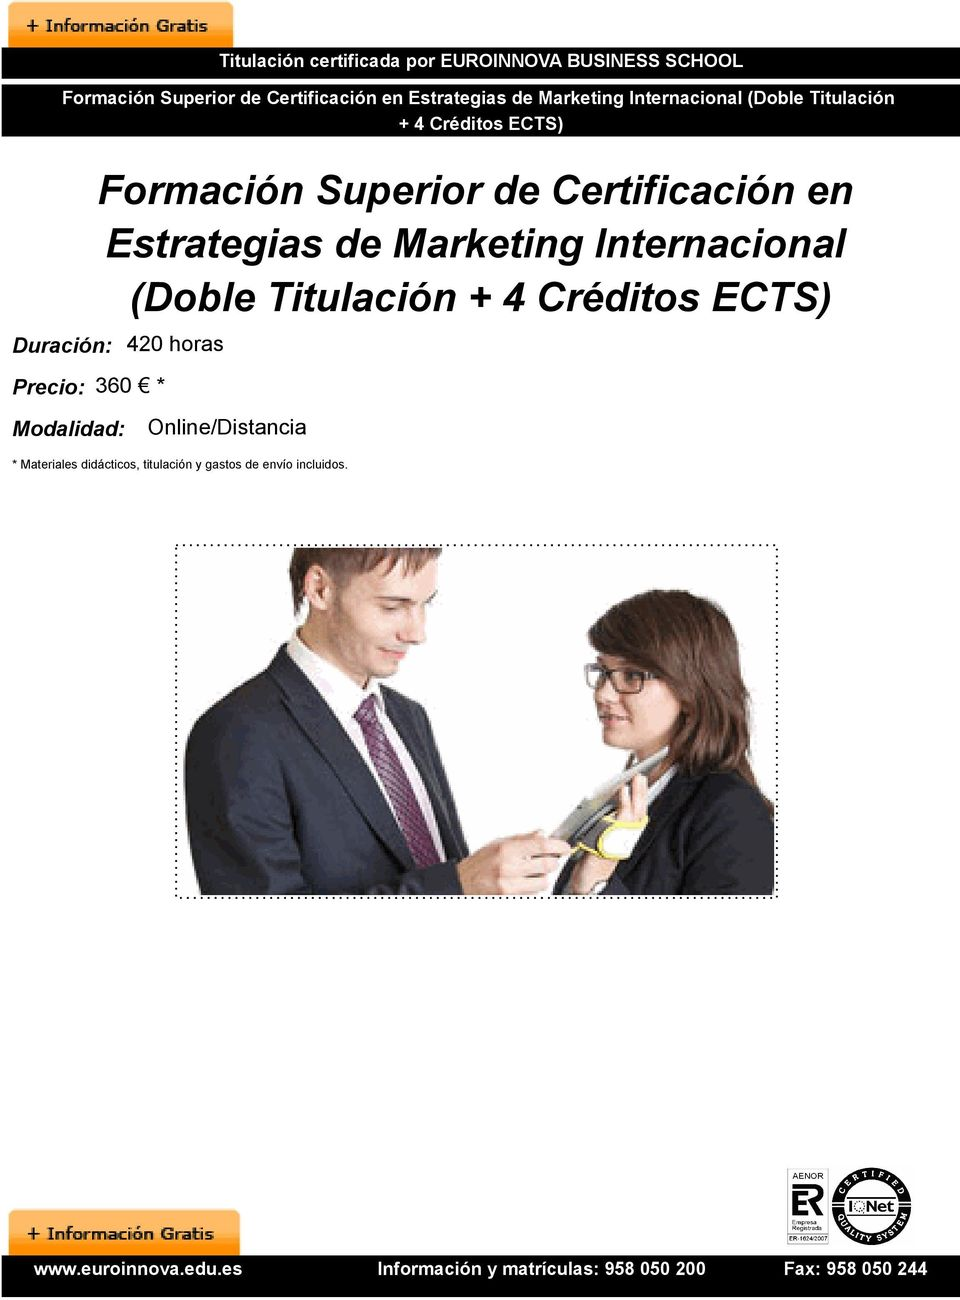 Formación Superior de Certificación en Estrategias de Marketing Internacional (Doble